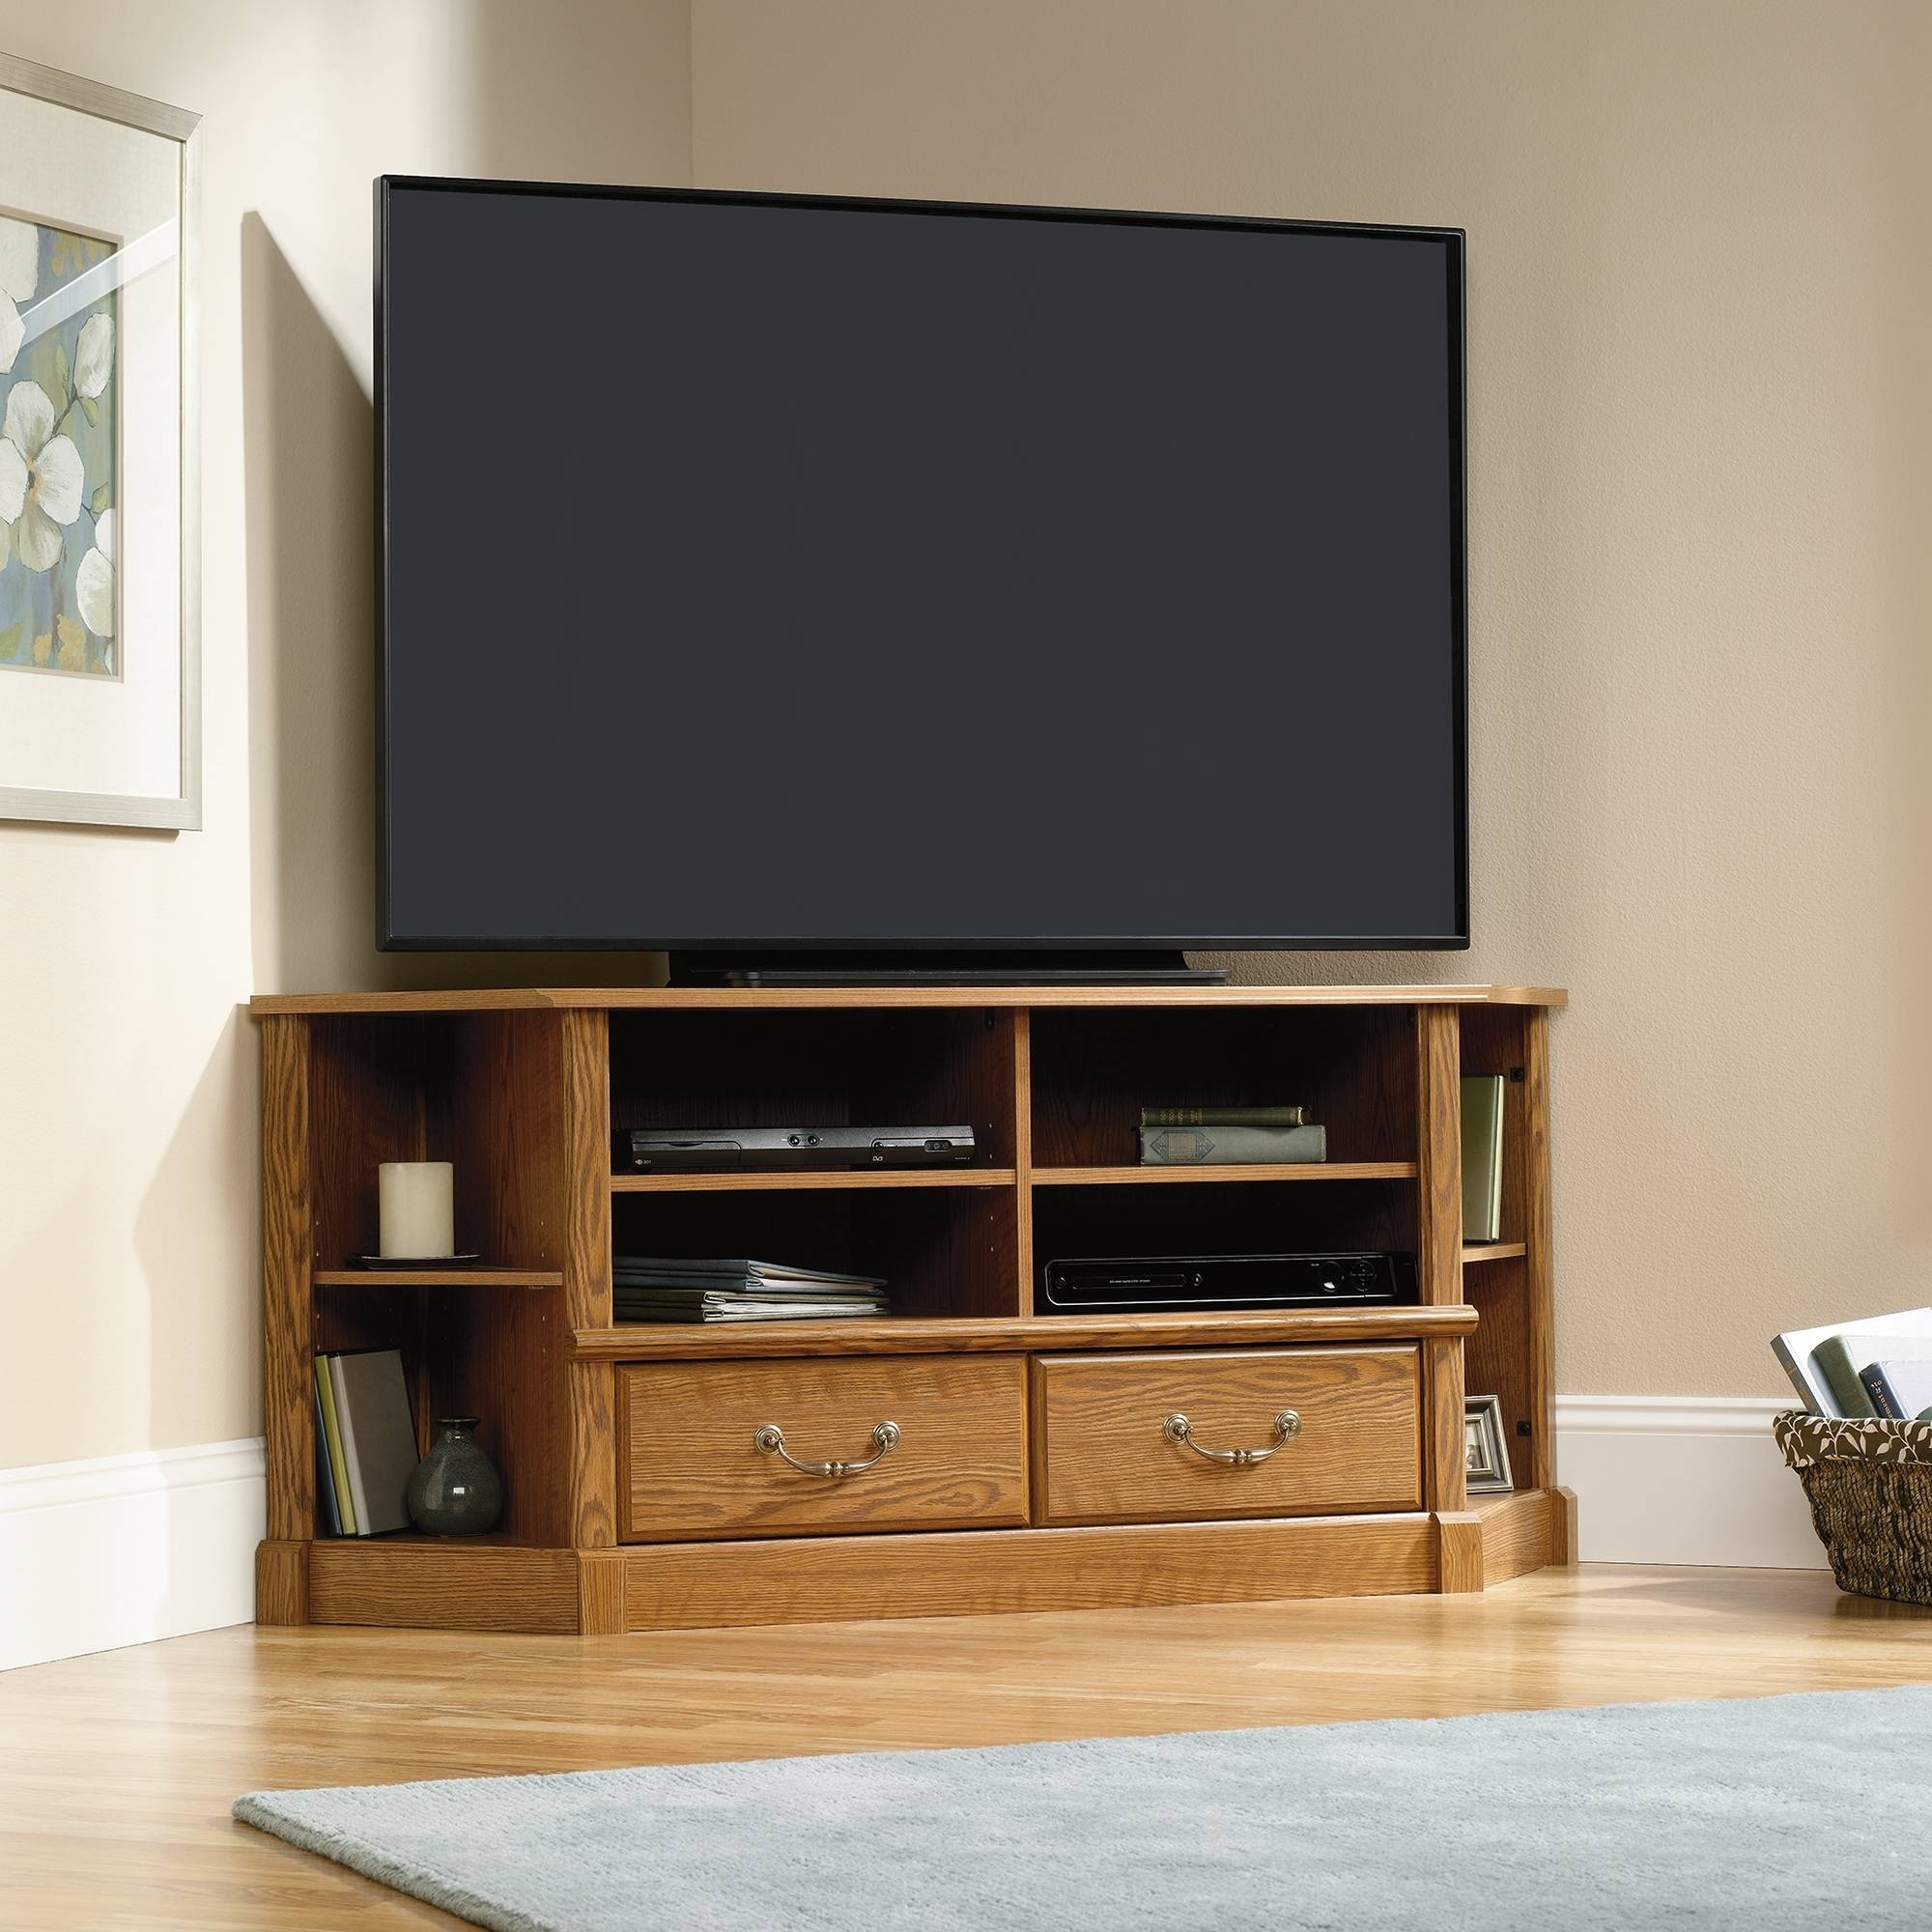 Picture of: Oak Corner Tv Stands For Flat Screens Ideas On Foter